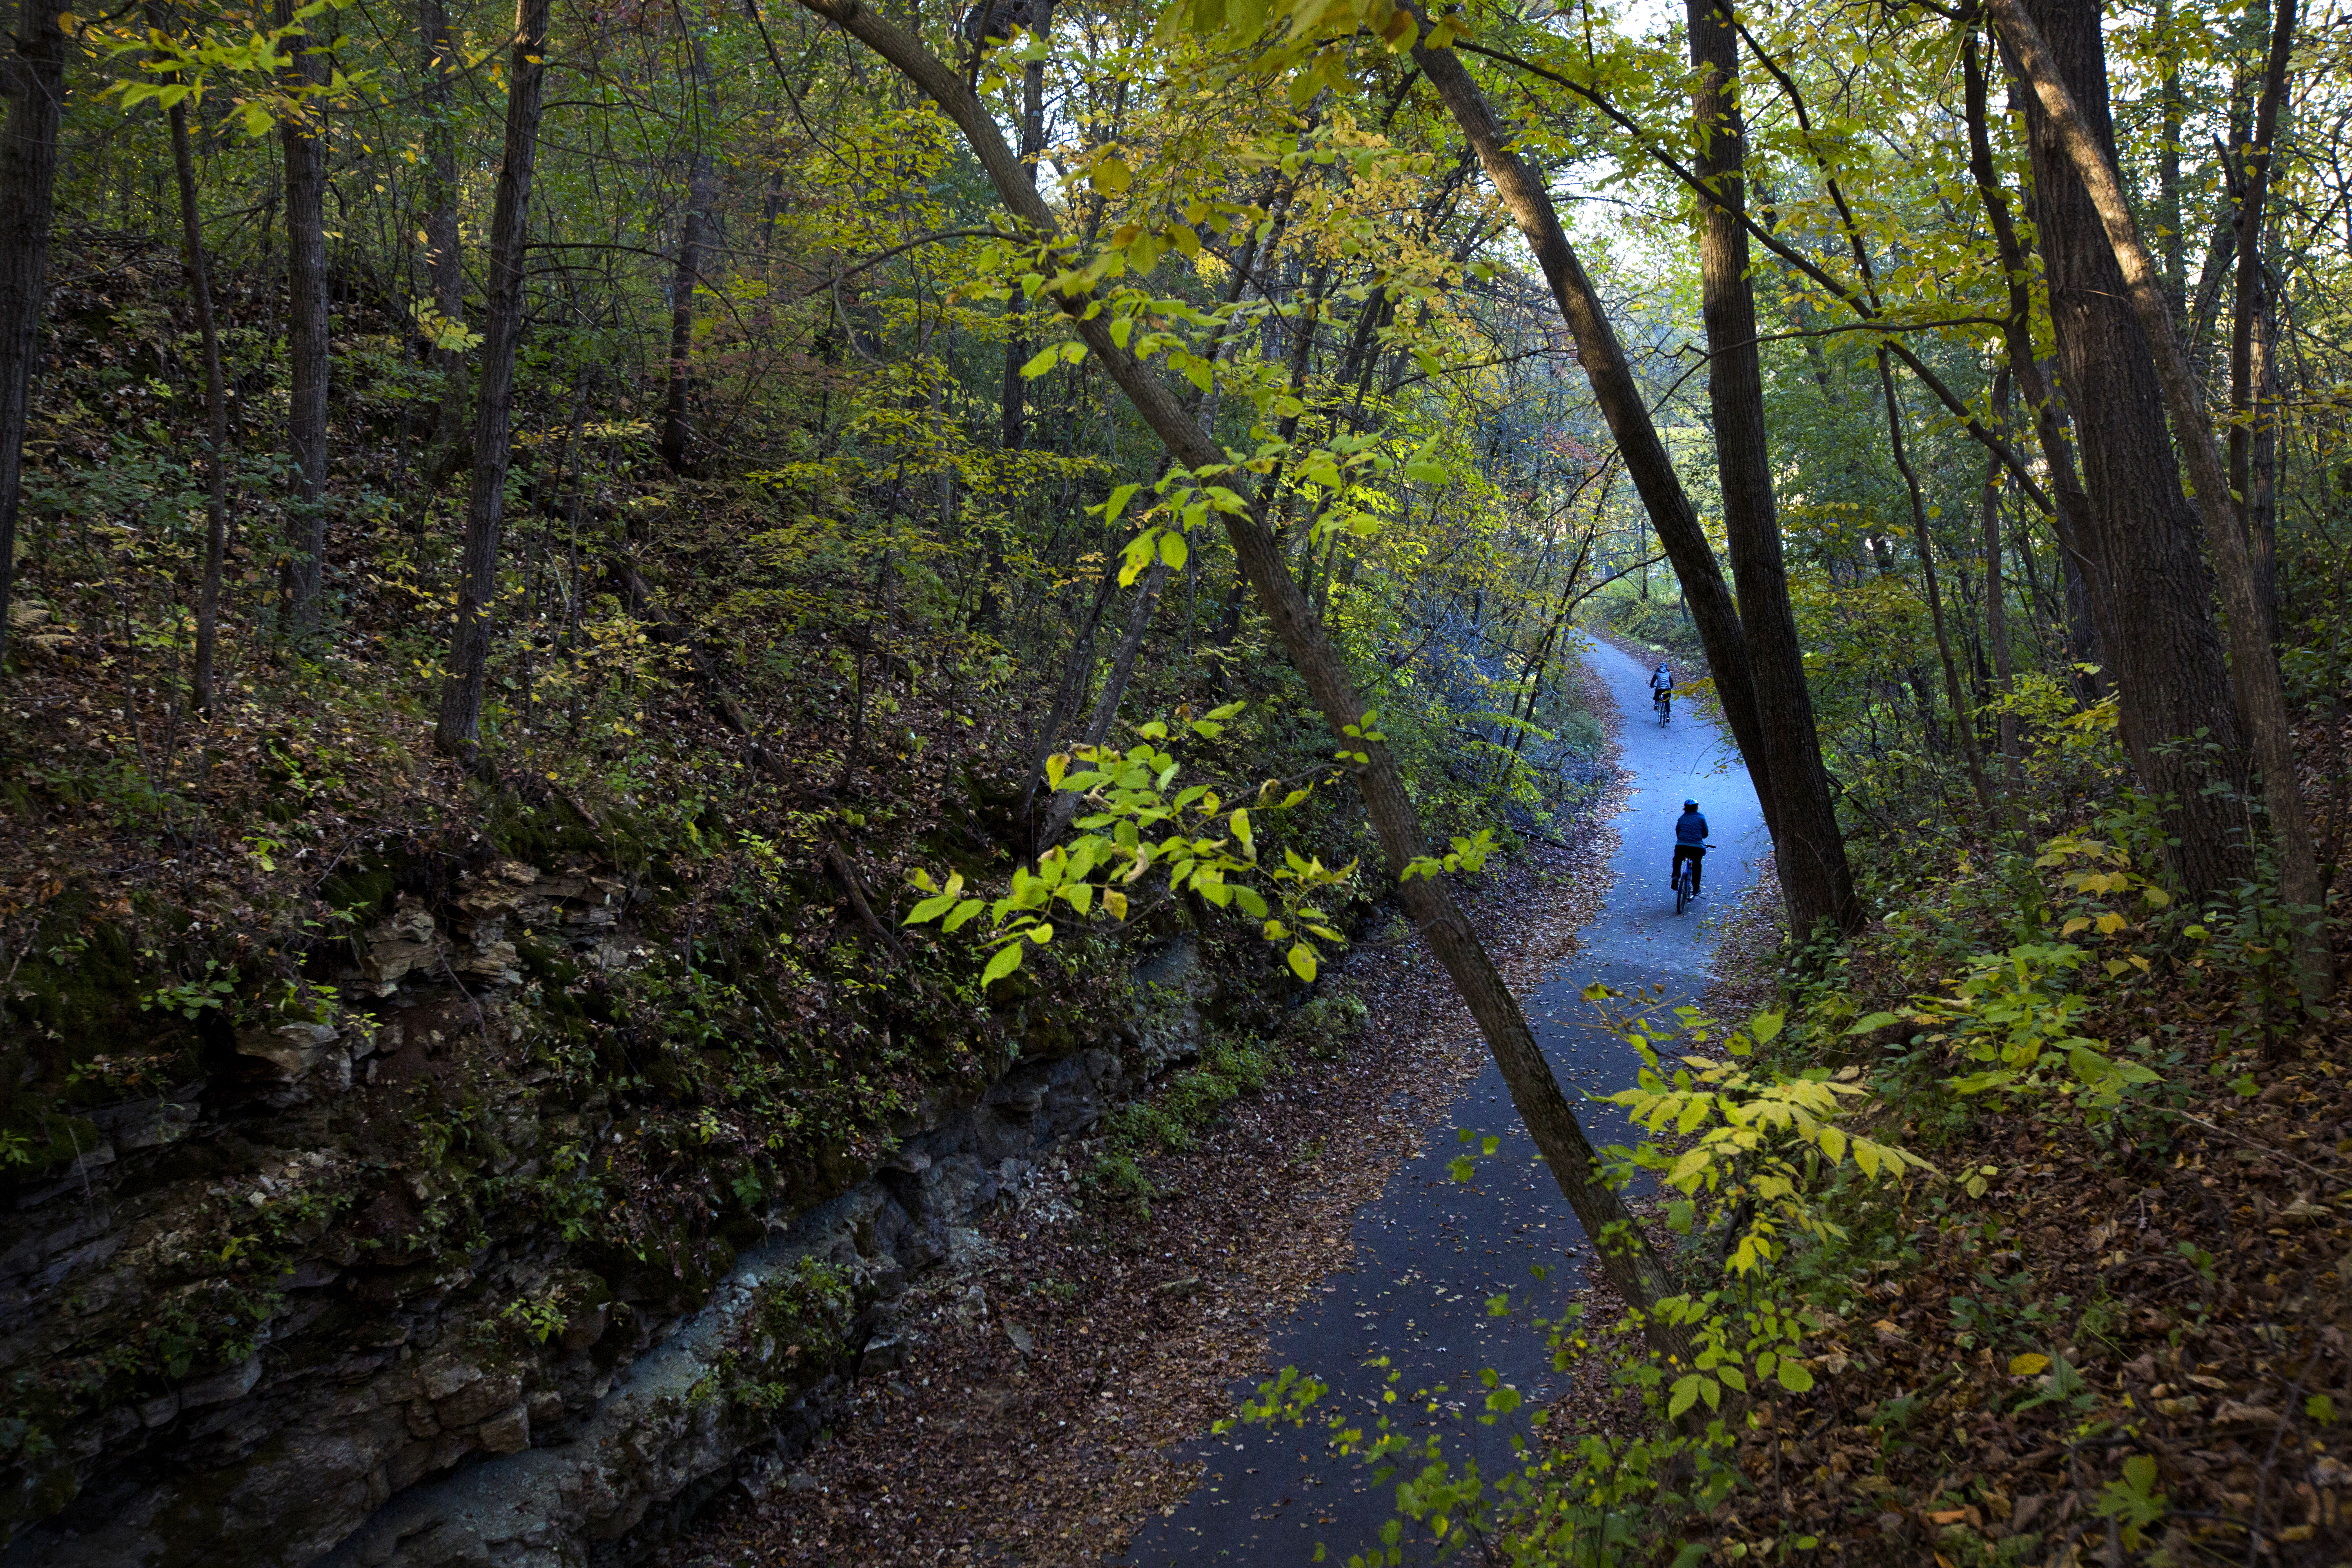 The 42-mile Root River state bike trail begins in Fountain and runs through the quaint and picturesque rural communities of Lanesboro, Whalan, Peterson, Rushford and Houston.